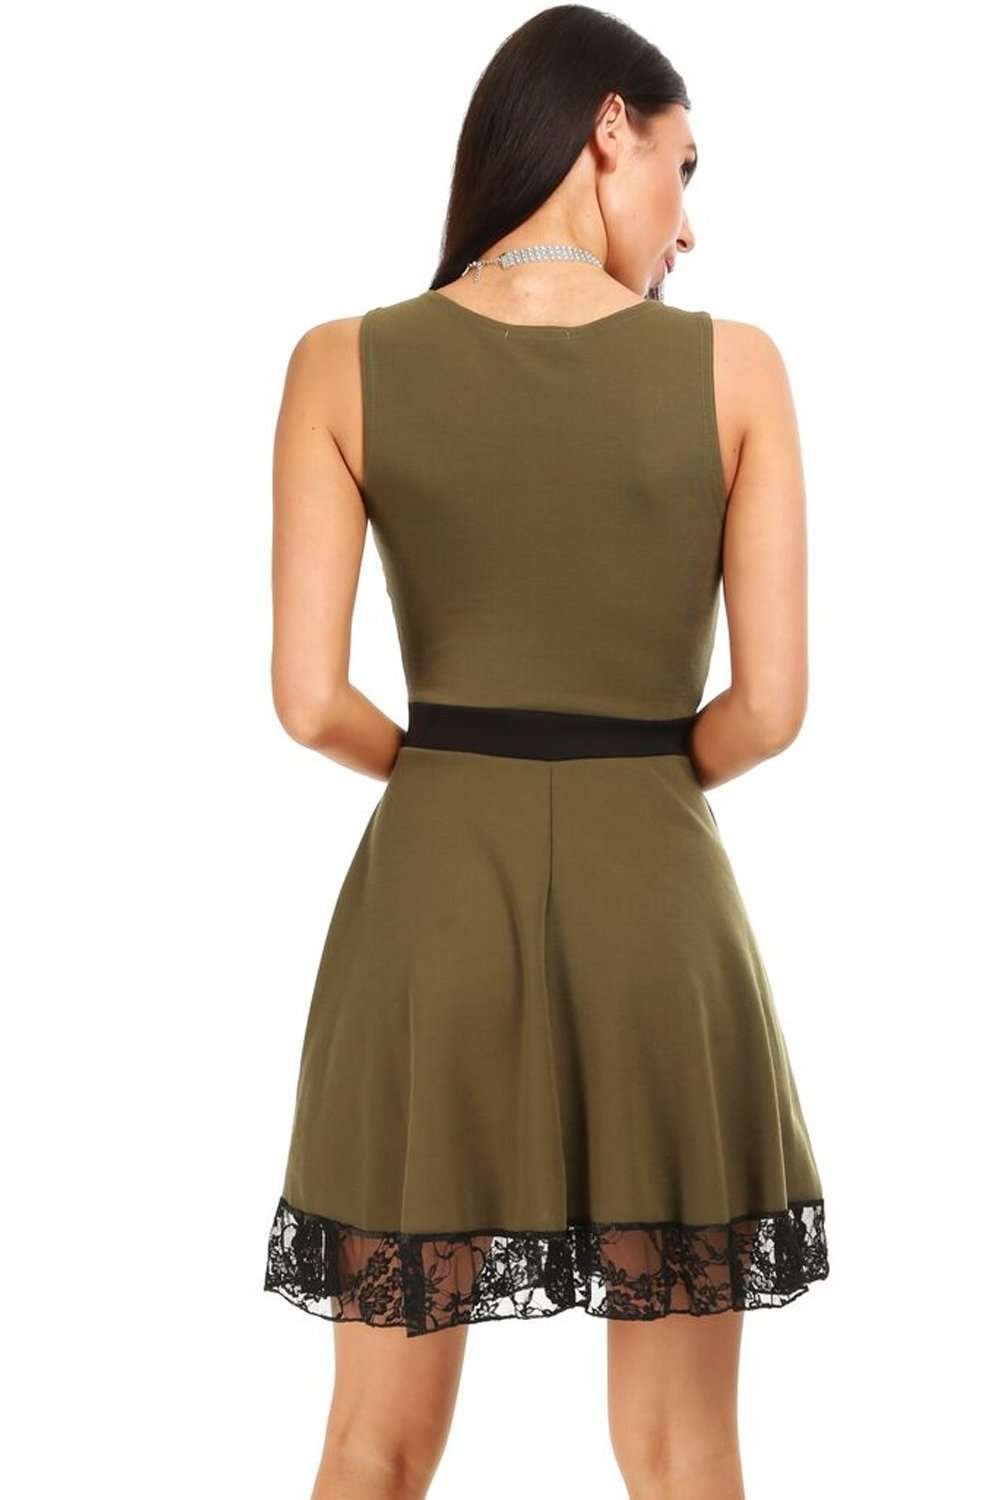 Khaki Lace Insert Sleeveless Mini Skater Dress - bejealous-com